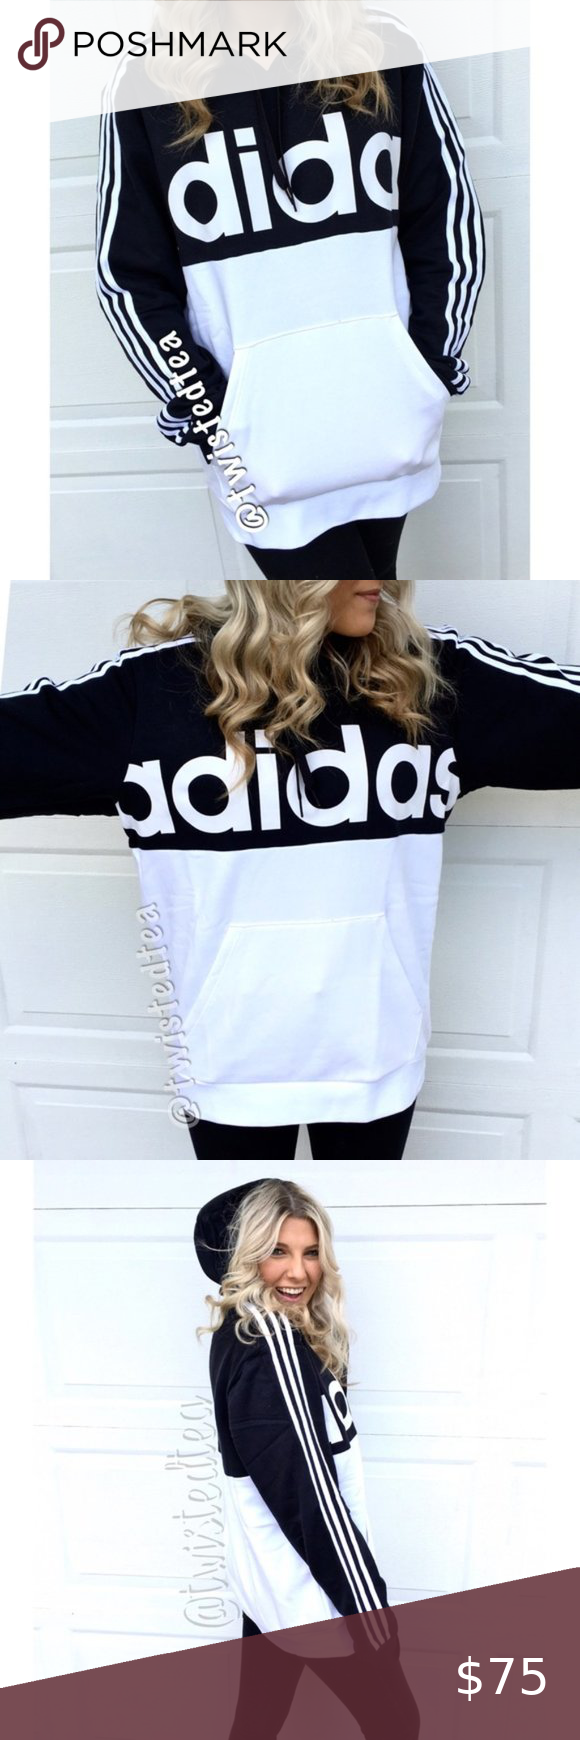 New Adidas Spell Out Pullover Hoodie Sweatshirt Xl Sweatshirts Hoodie Striped Hoodie Adidas Hoodie Women [ 1740 x 580 Pixel ]